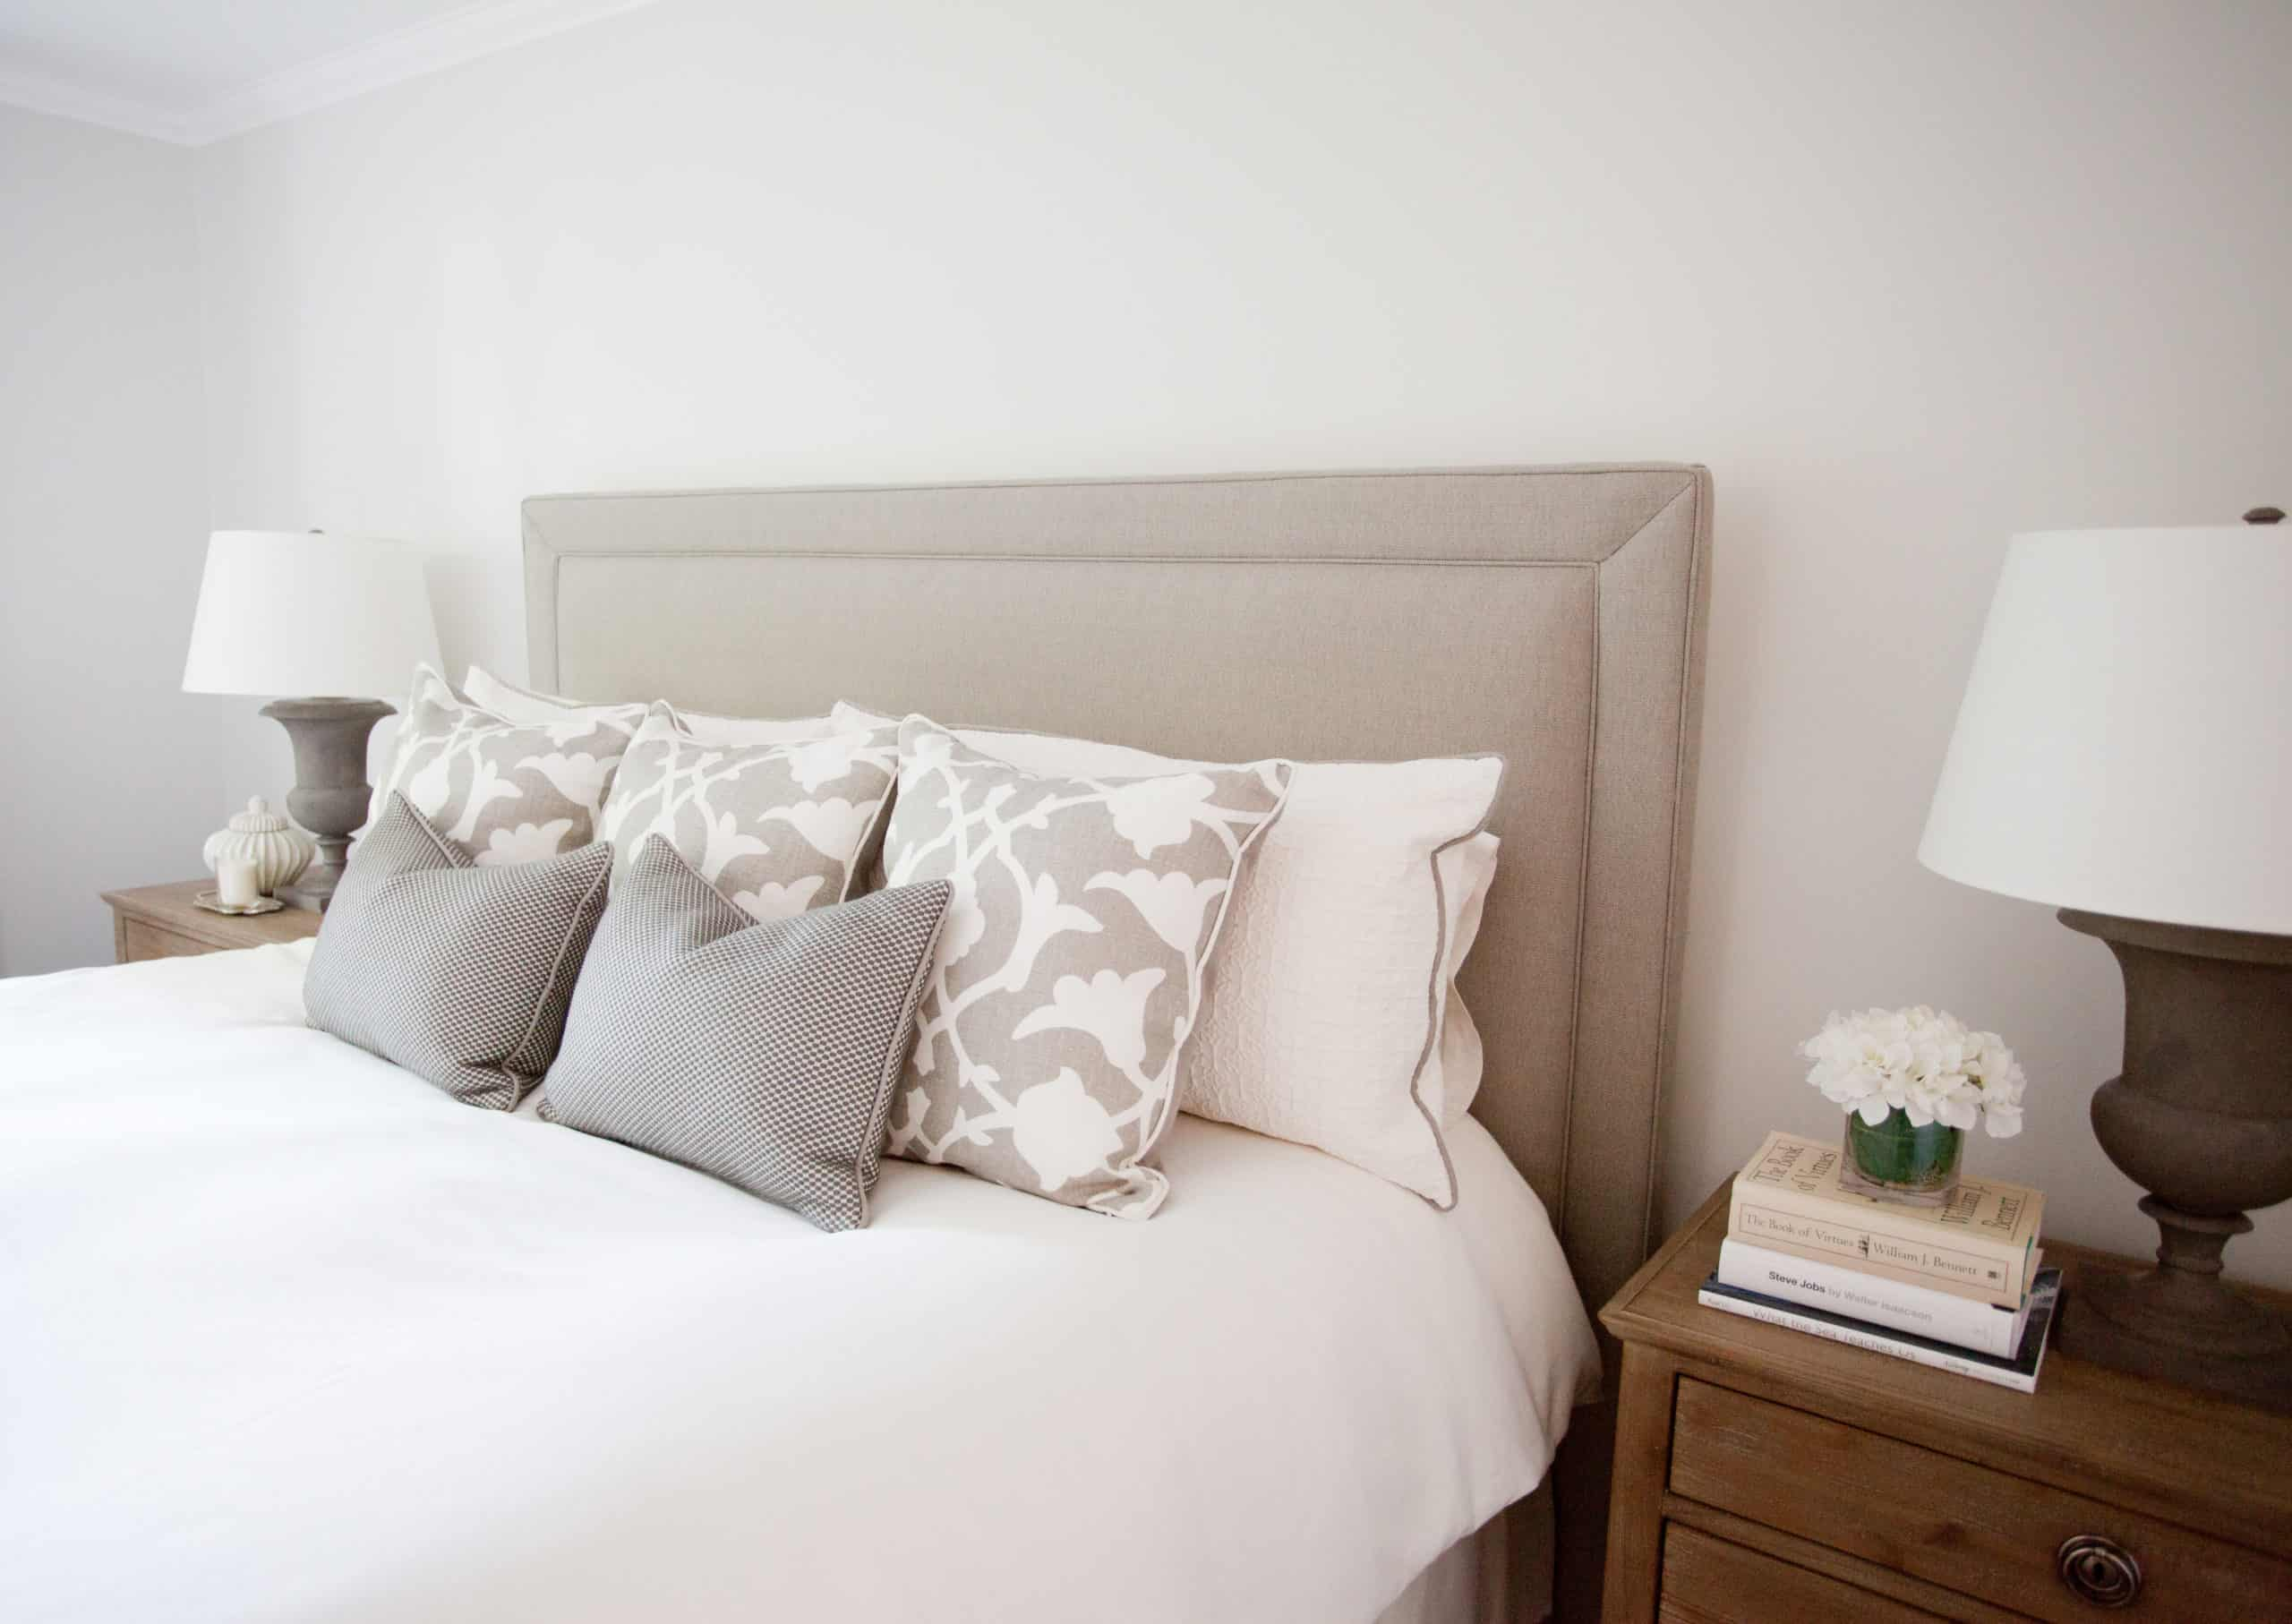 Array of white and grey pillows on a bright white bed